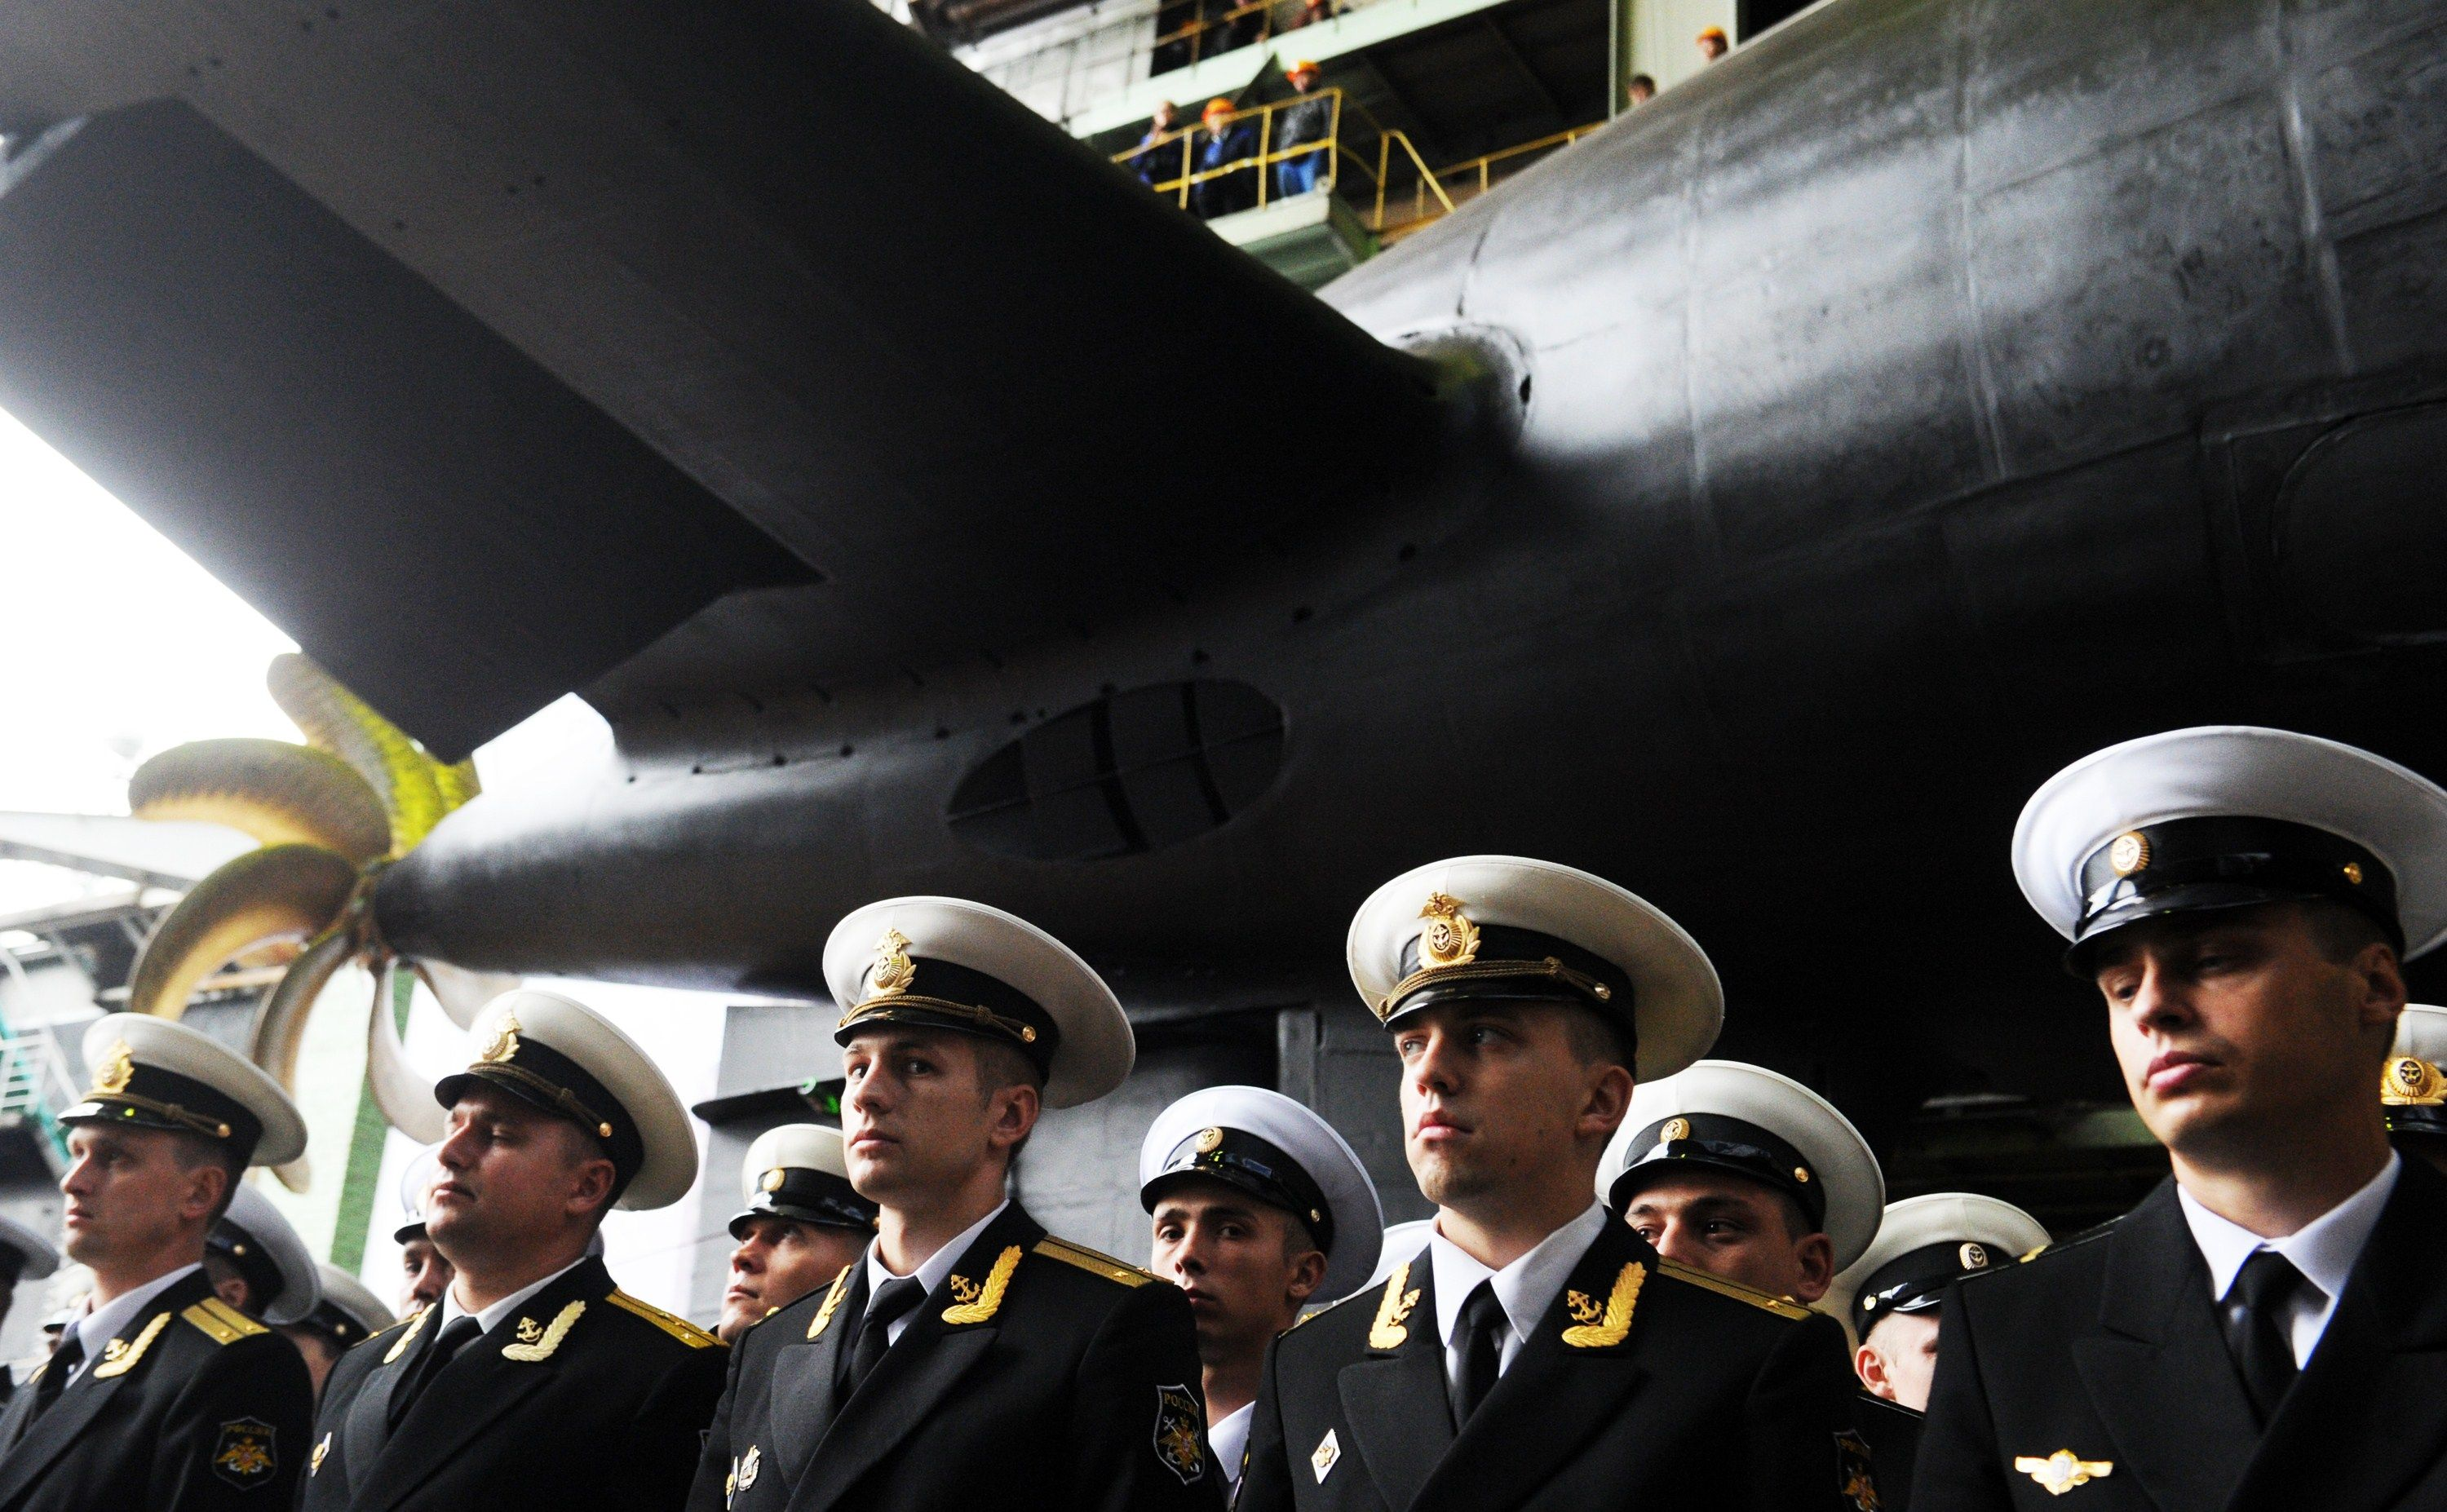 A row of Russian navy officers stand in formation in front of a submarine